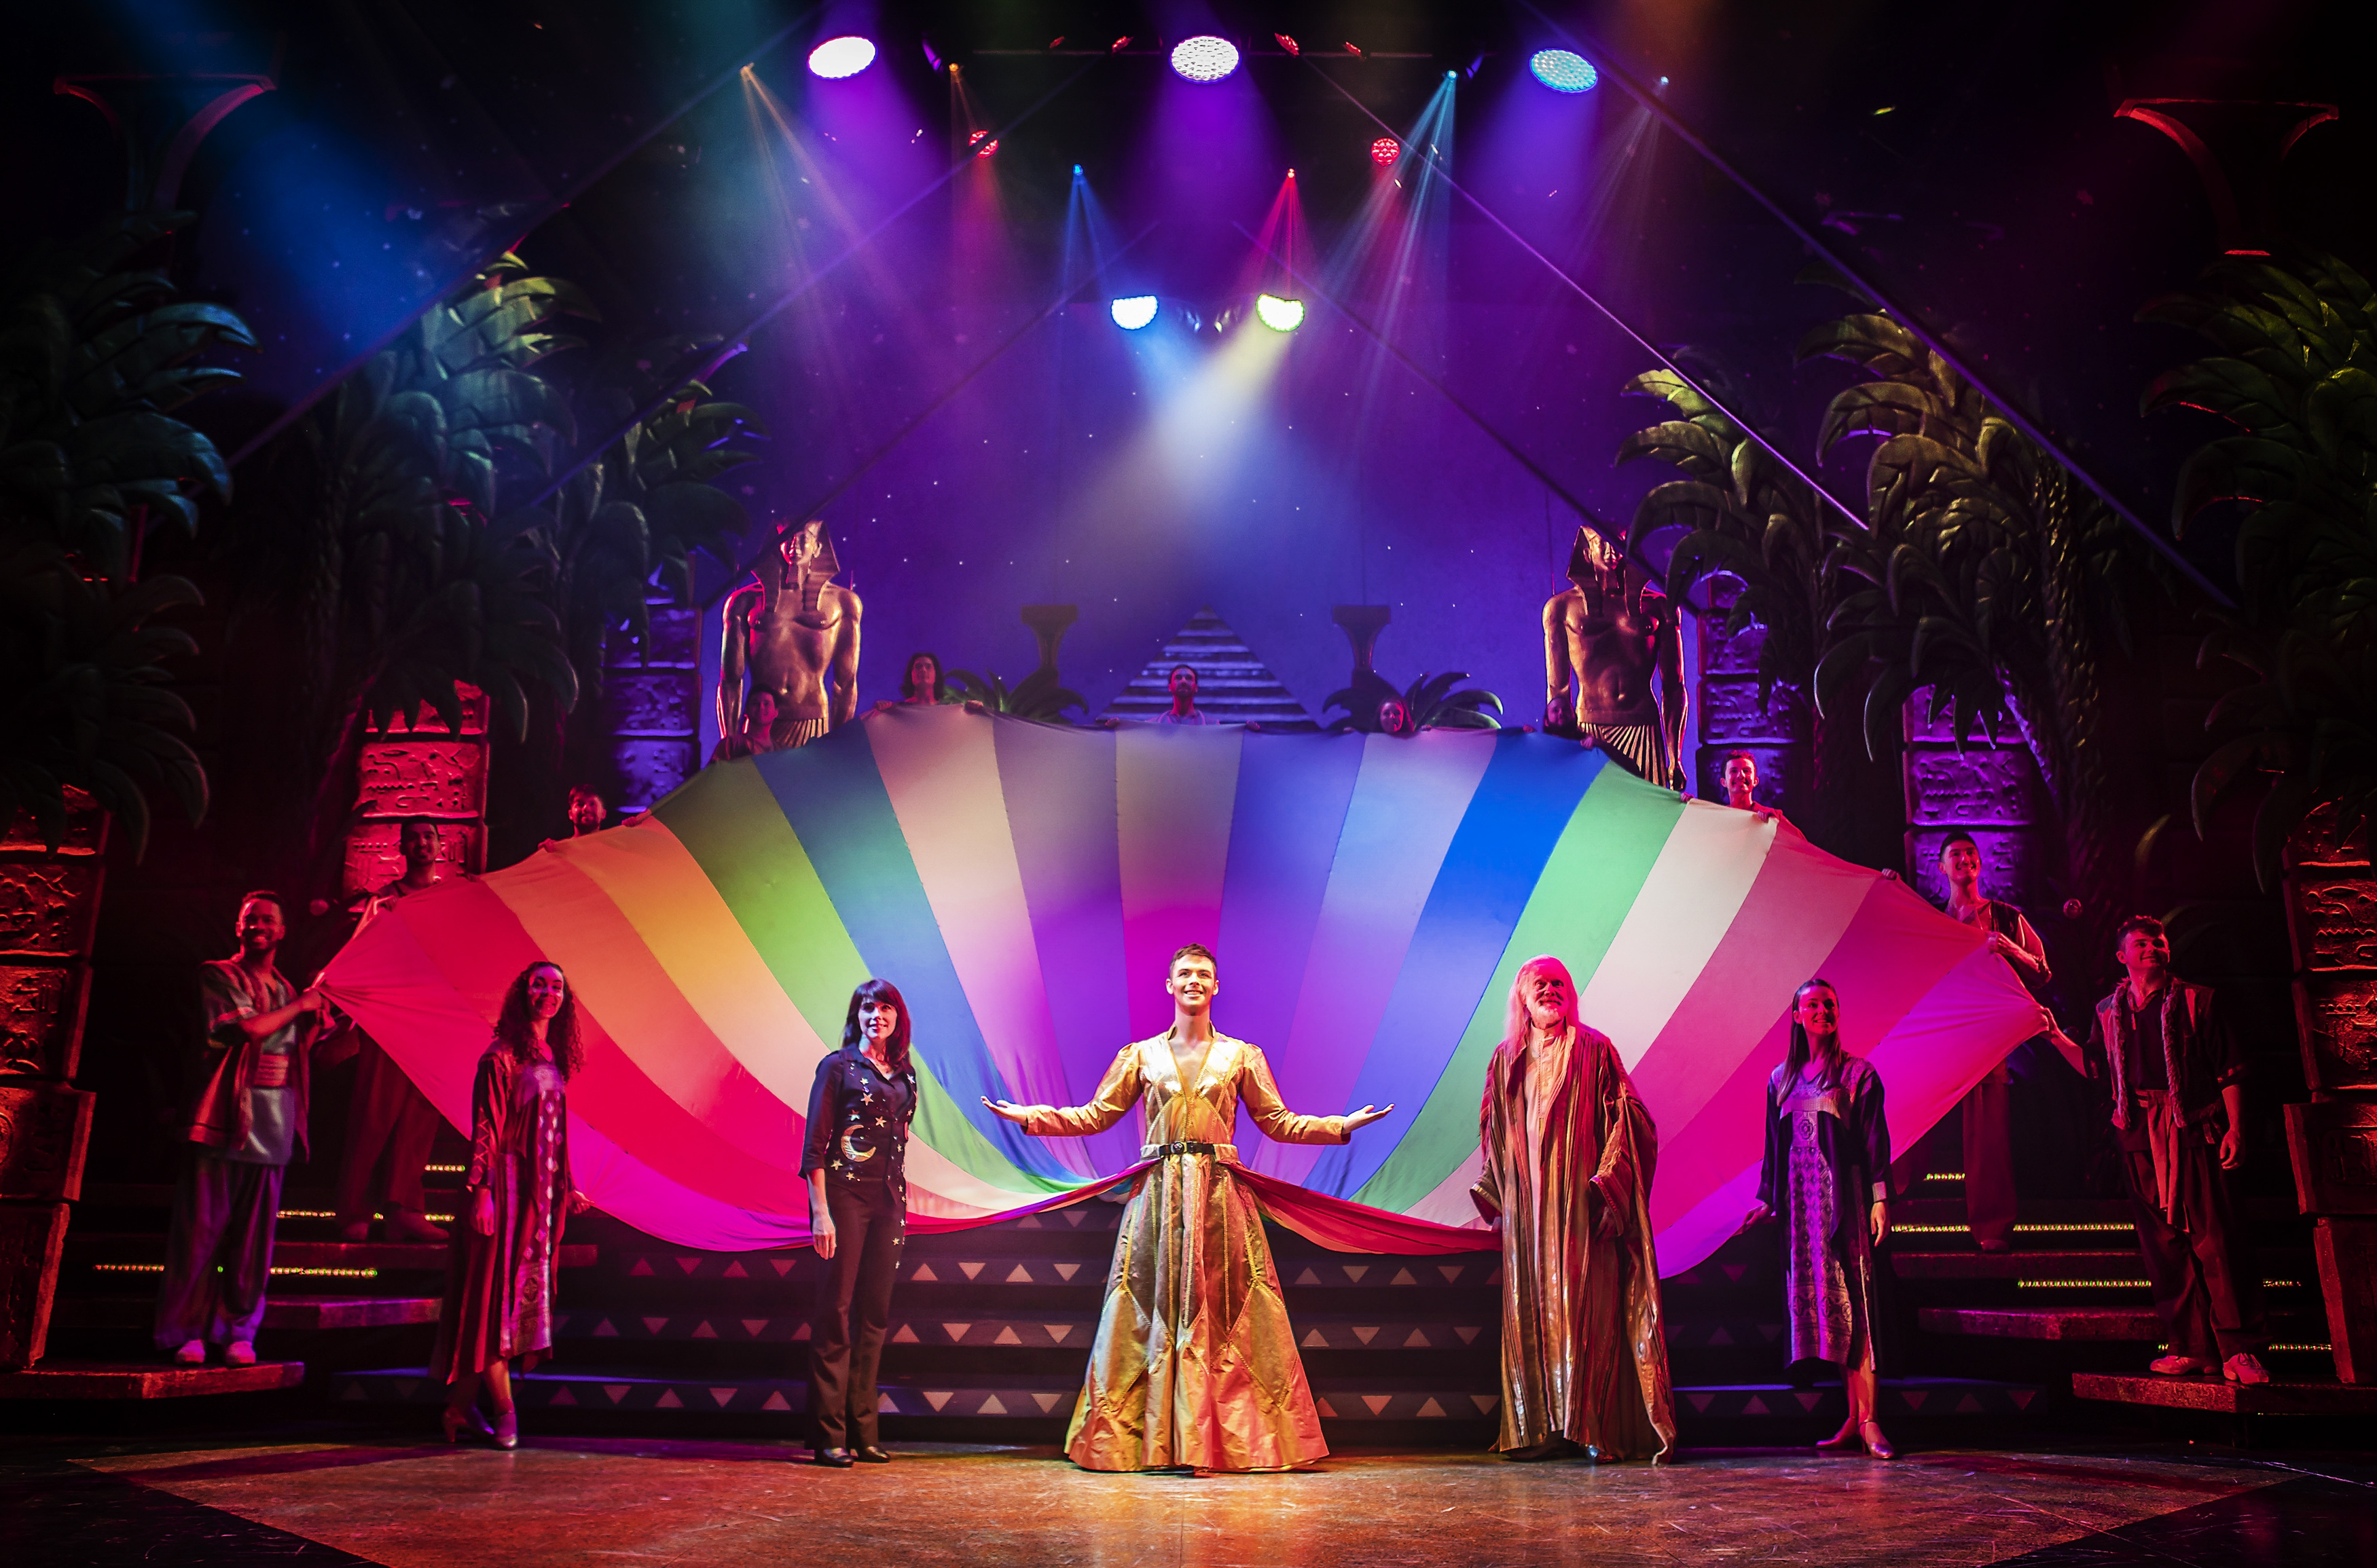 MK Theatre Presents: Joseph and the Amazing Technicolor Dreamcoat